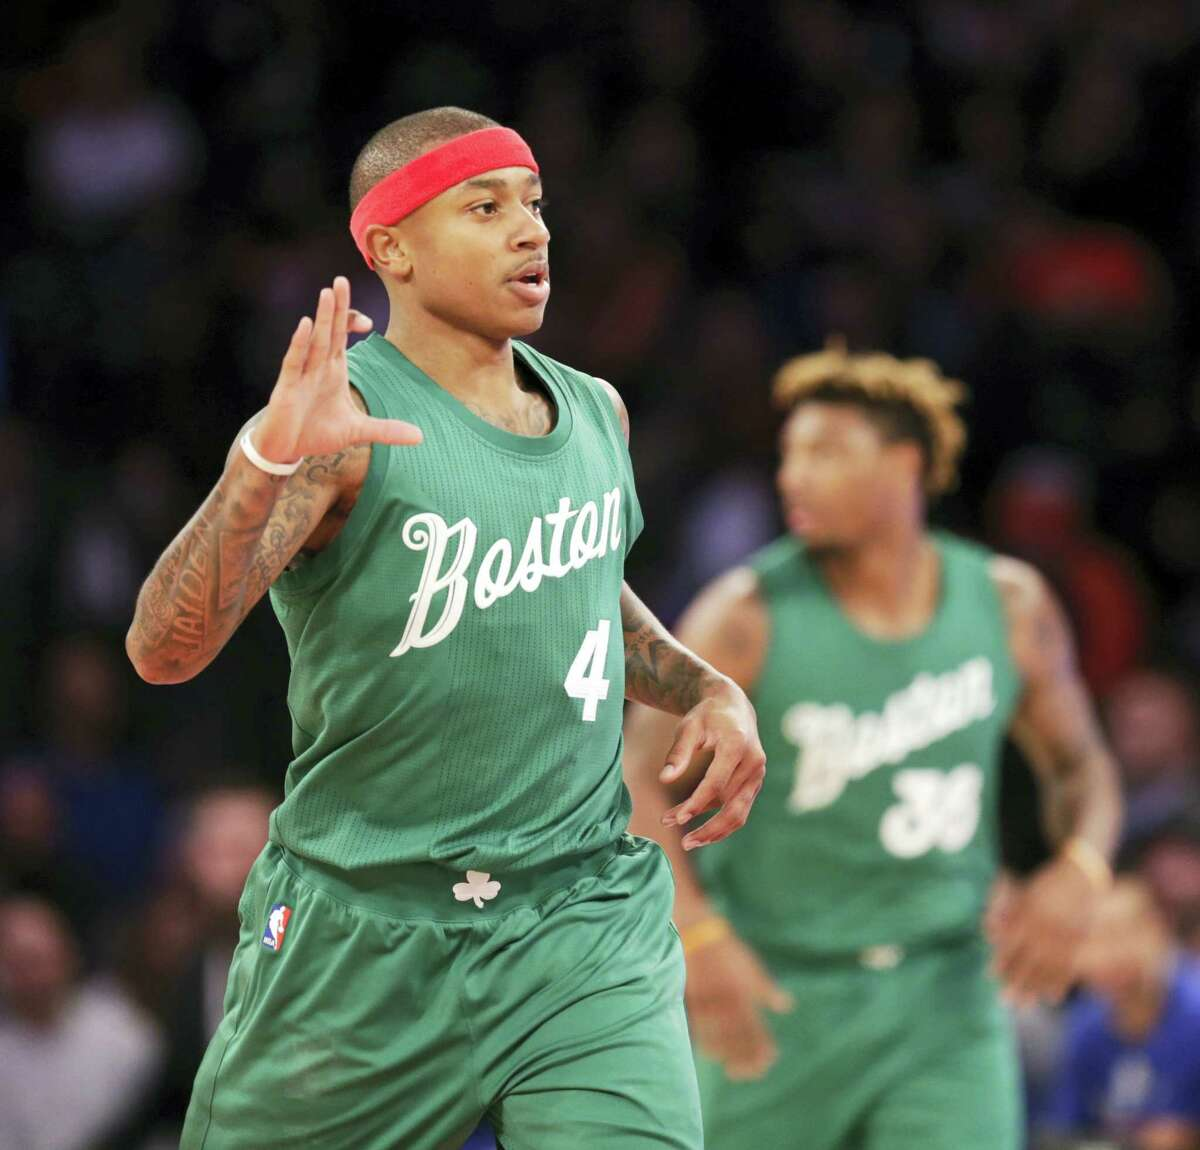 Boston Celtics' Isaiah Thomas reacts after sinking a three-point basket during the first half of the NBA basketball game against the Boston Celtics, Sunday, Dec. 25, 2016 in New York. (AP Photo/Seth Wenig)